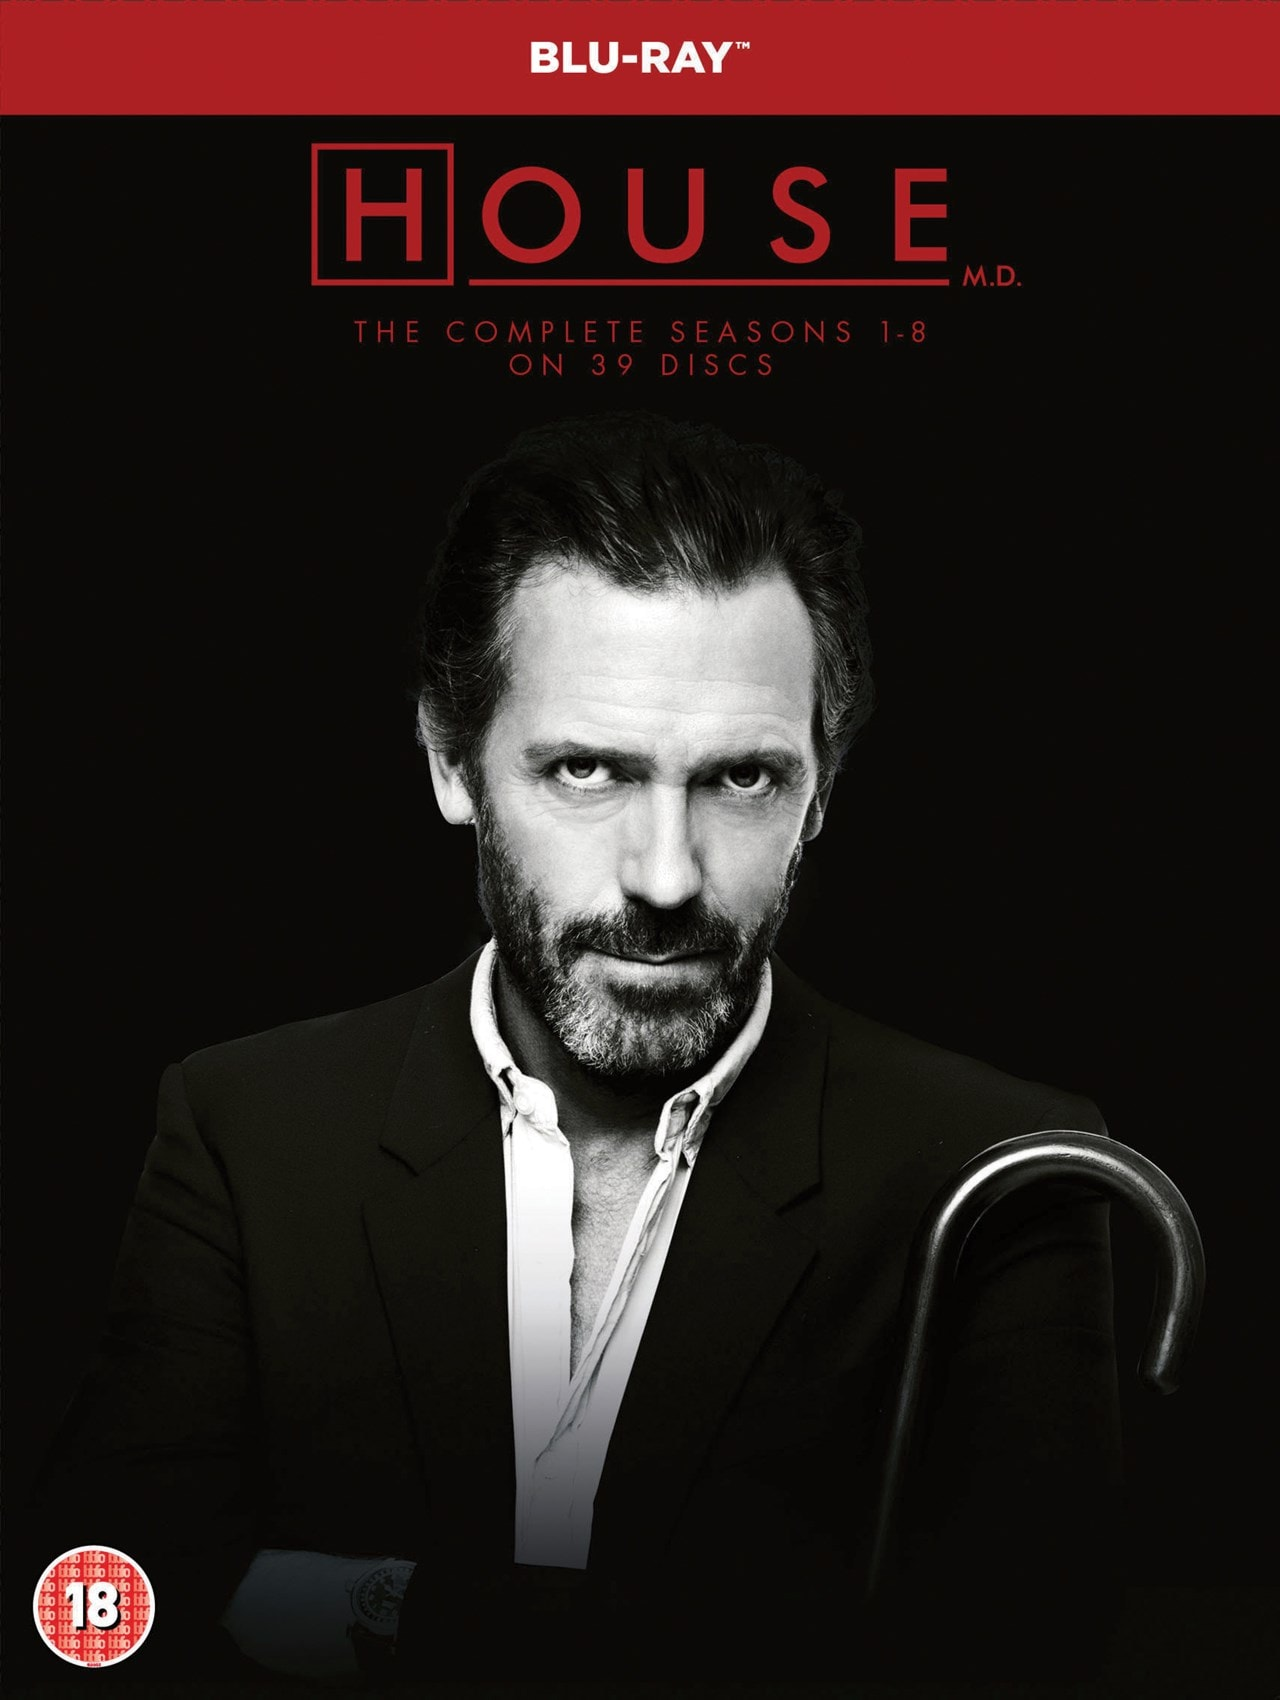 House: The Complete Seasons 1-8 - 1